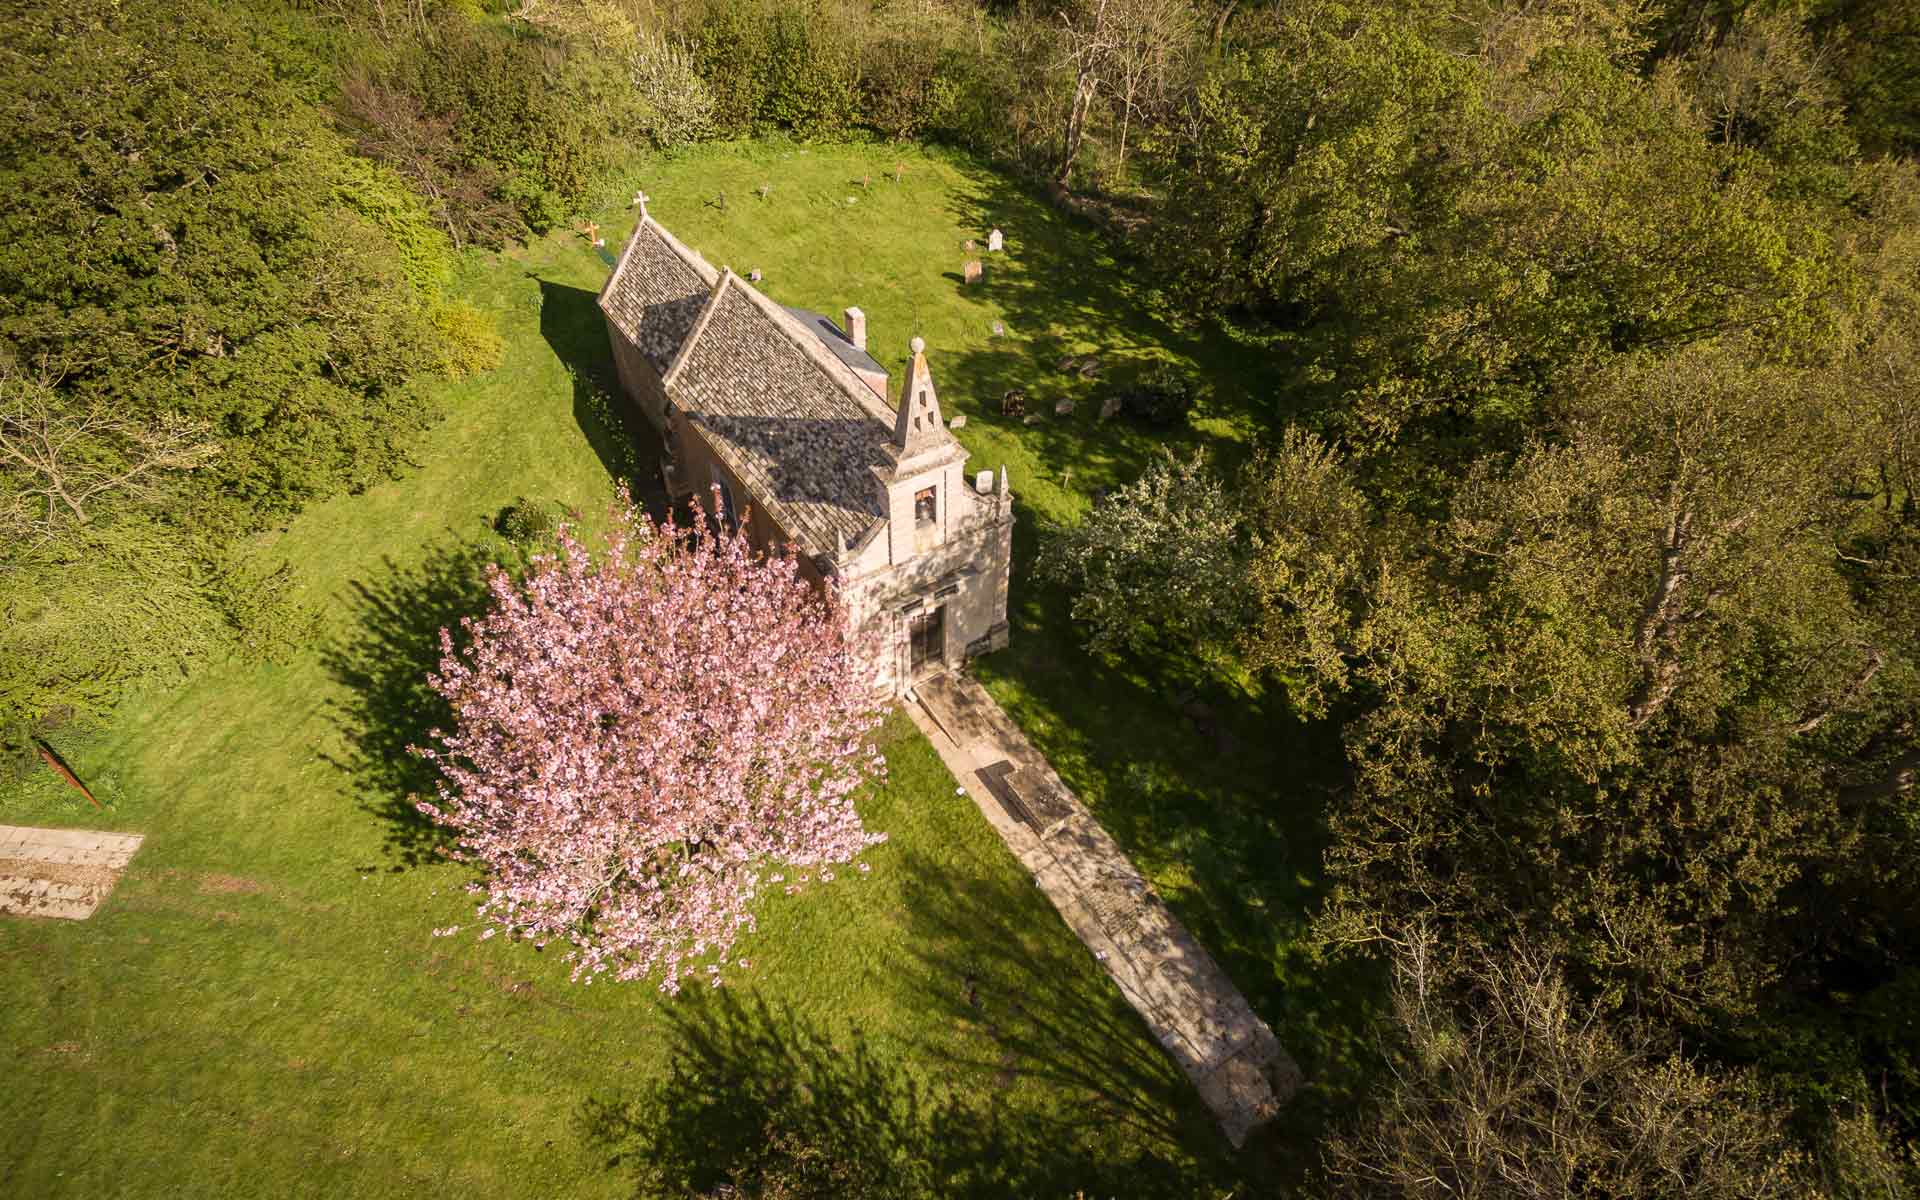 Aerial view of Little Gidding Church